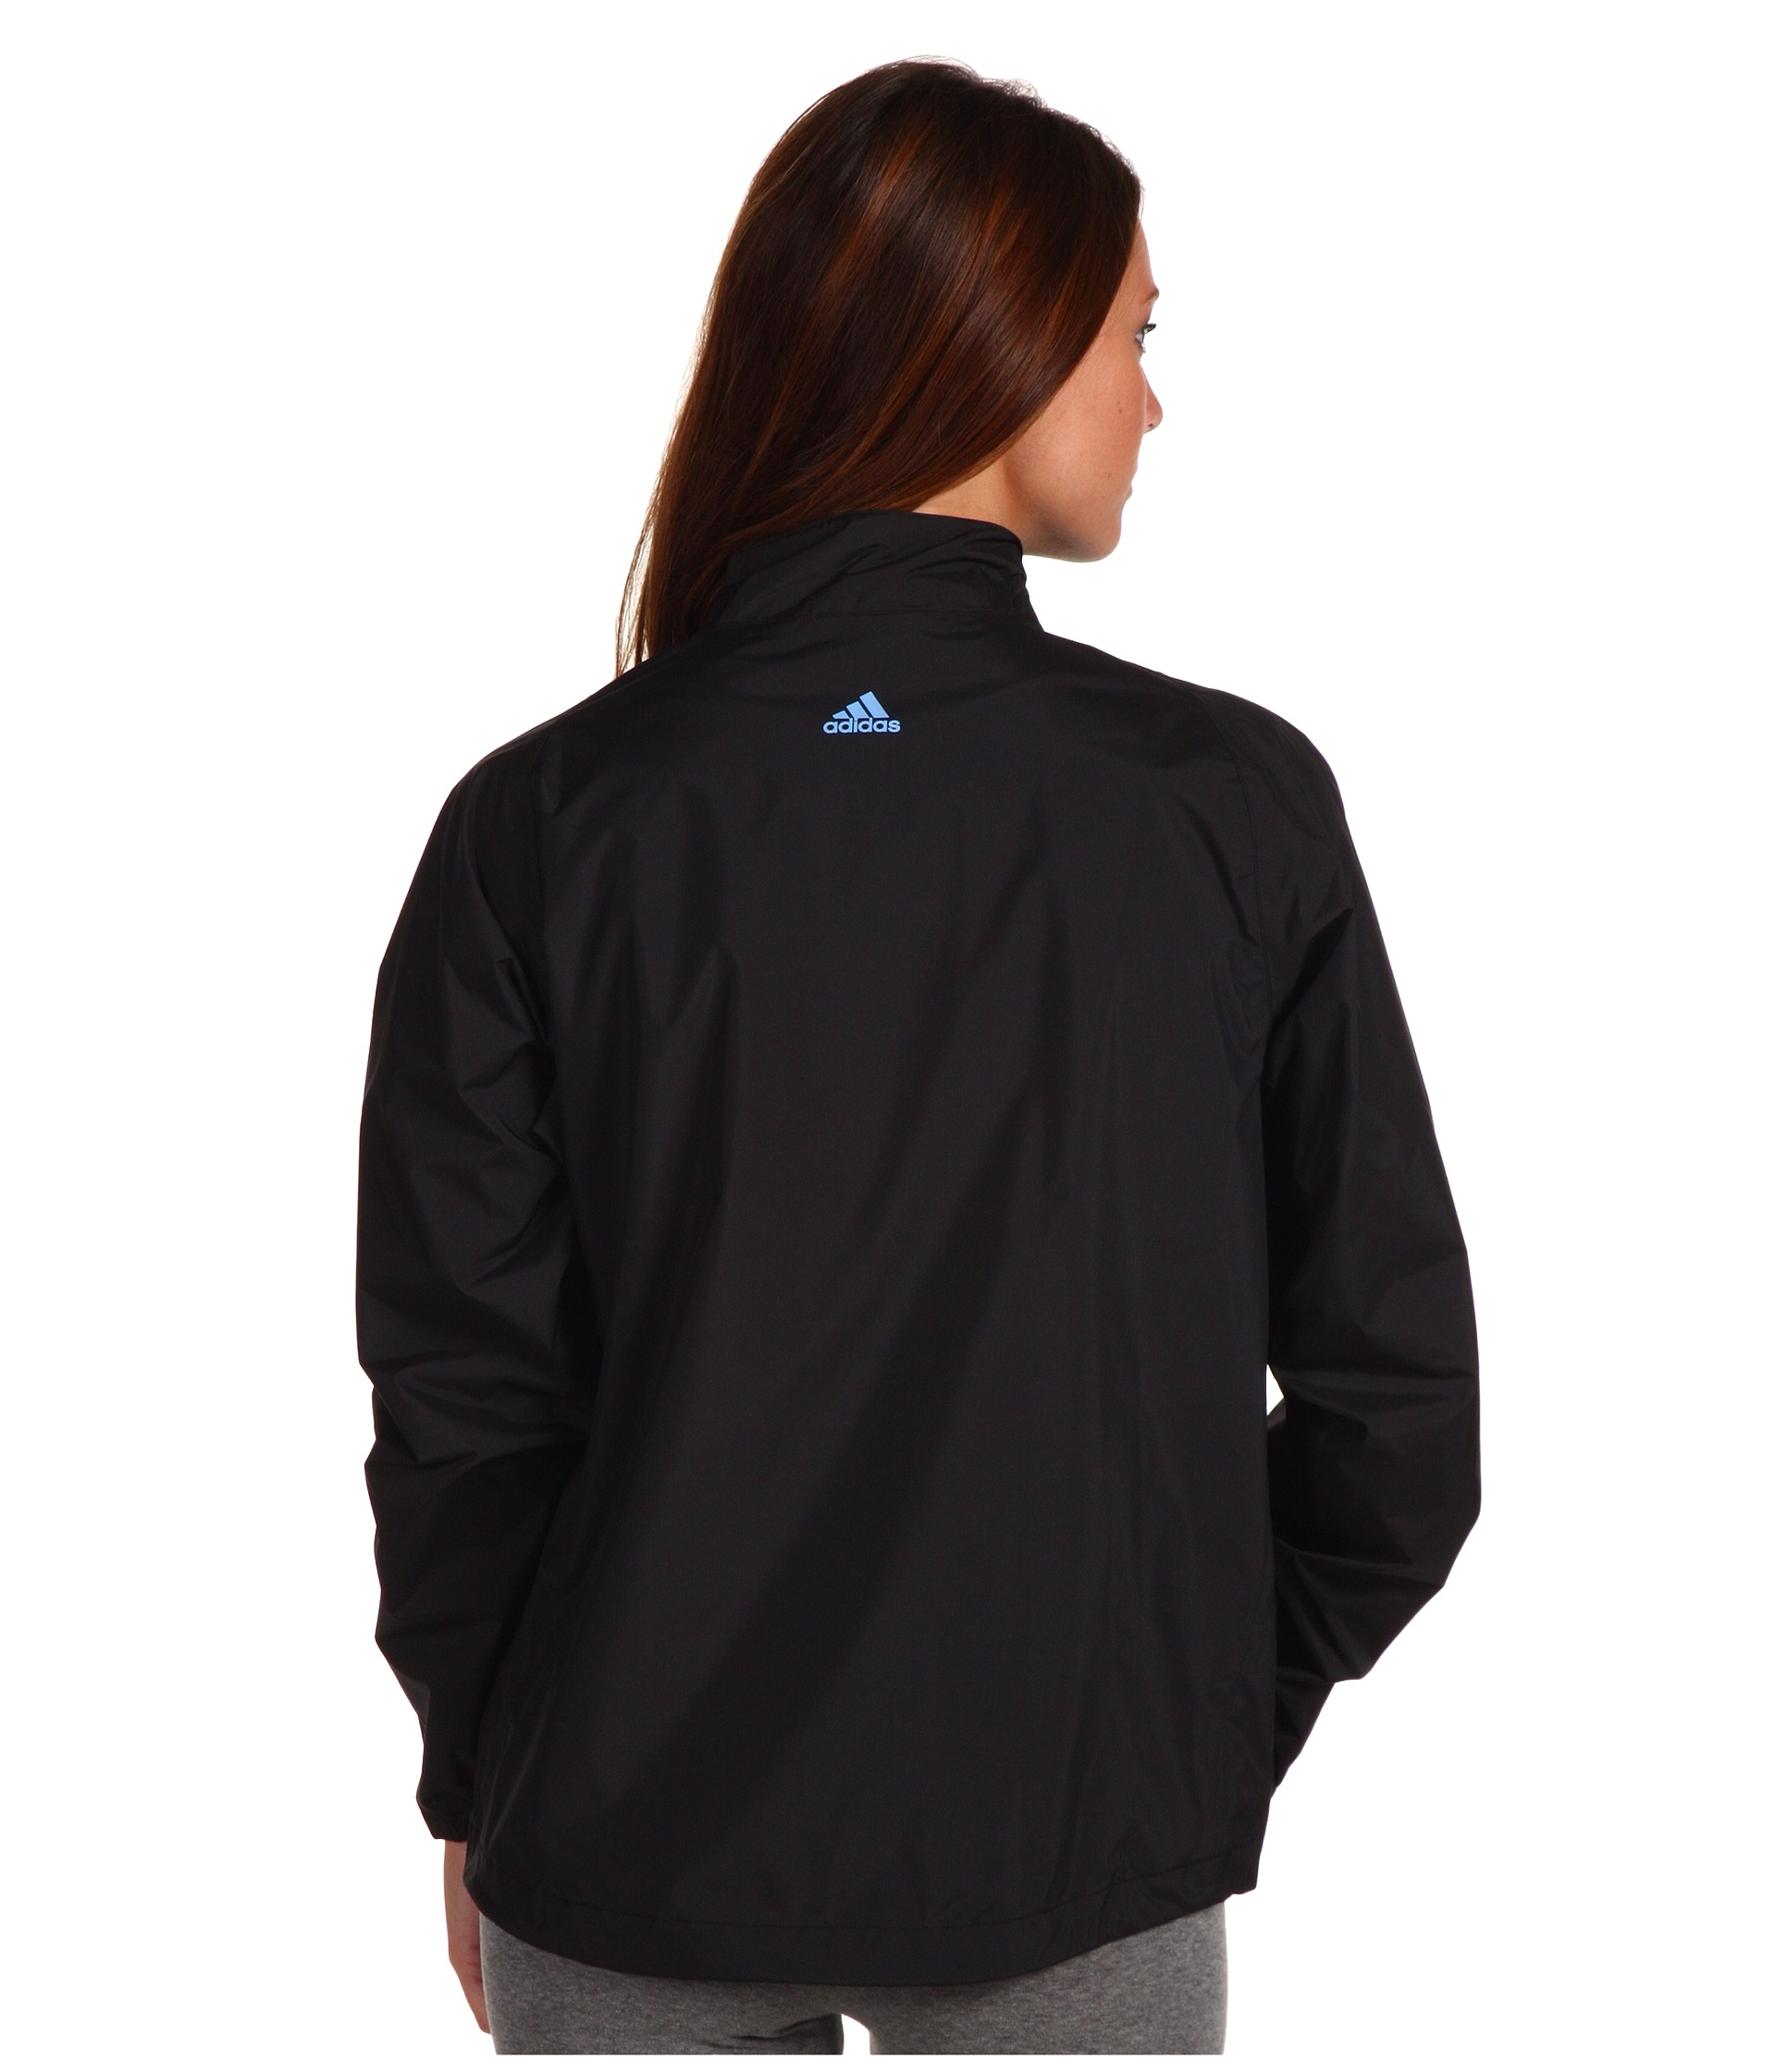 Adidas golf climaproof rain provisional jacket black for Adidas golf rain shirt